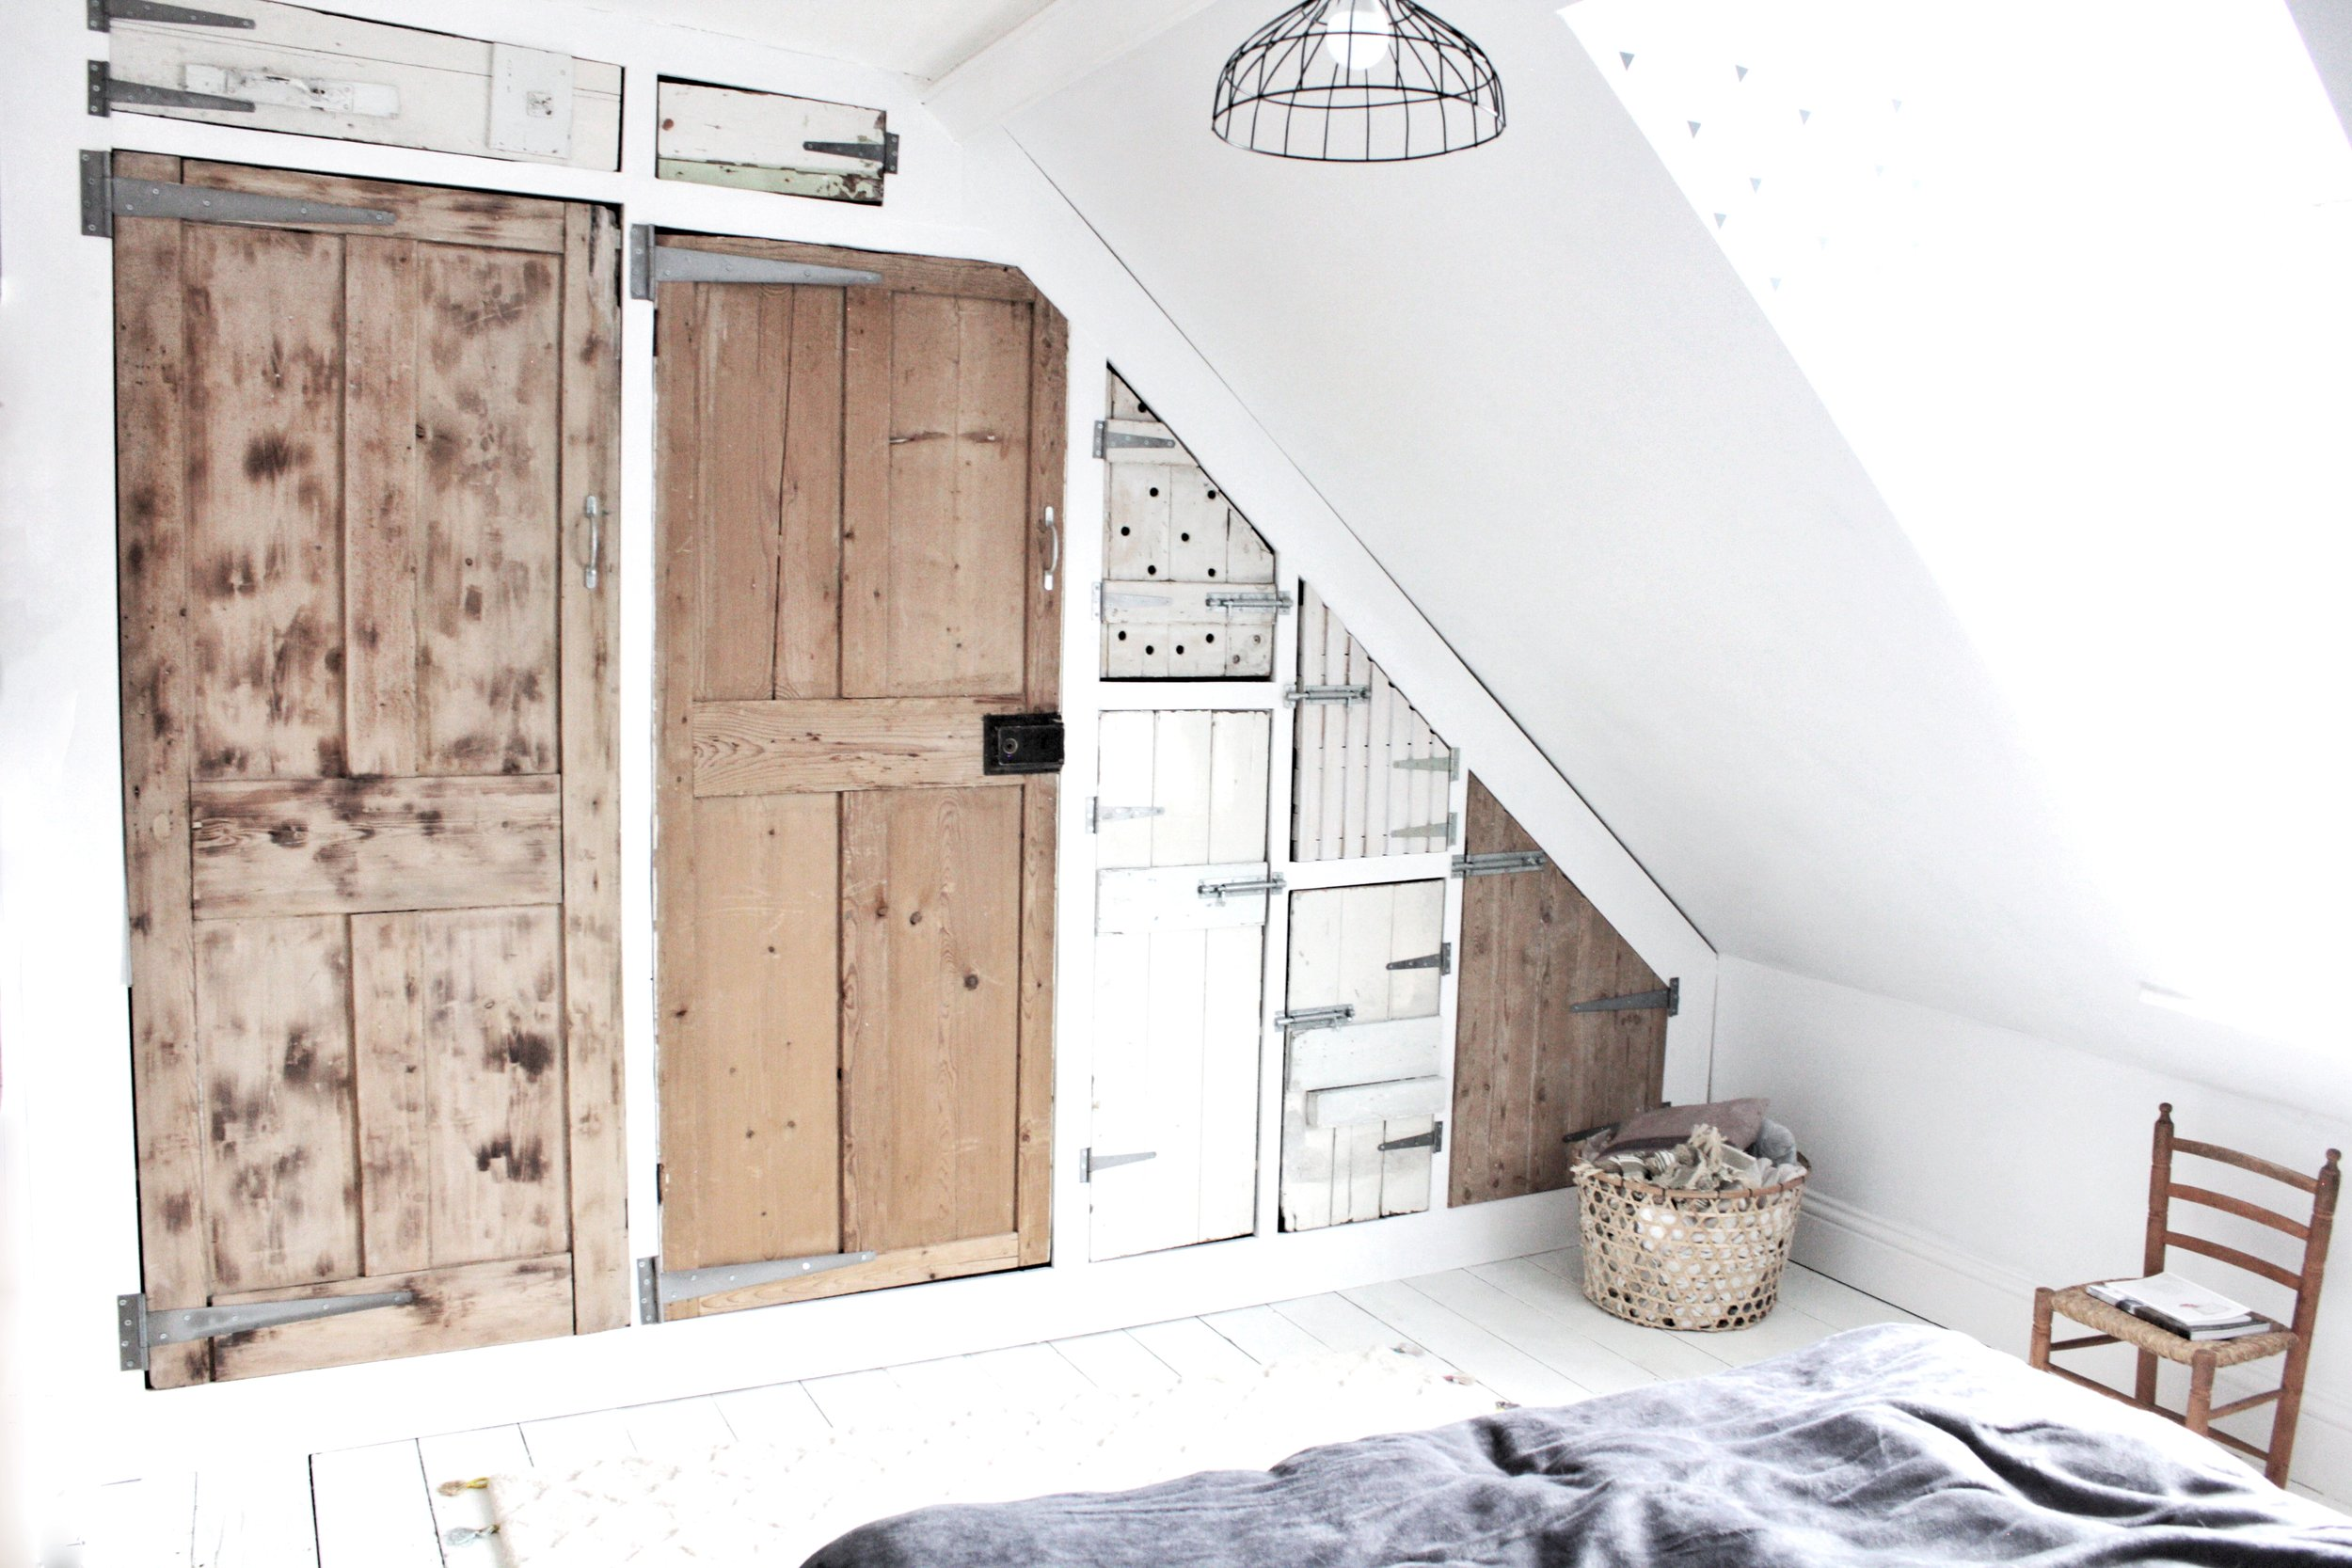 Build your own wardrobe using an Ikea base and reclaimed doors, tutorial by Hesters Handmade Home